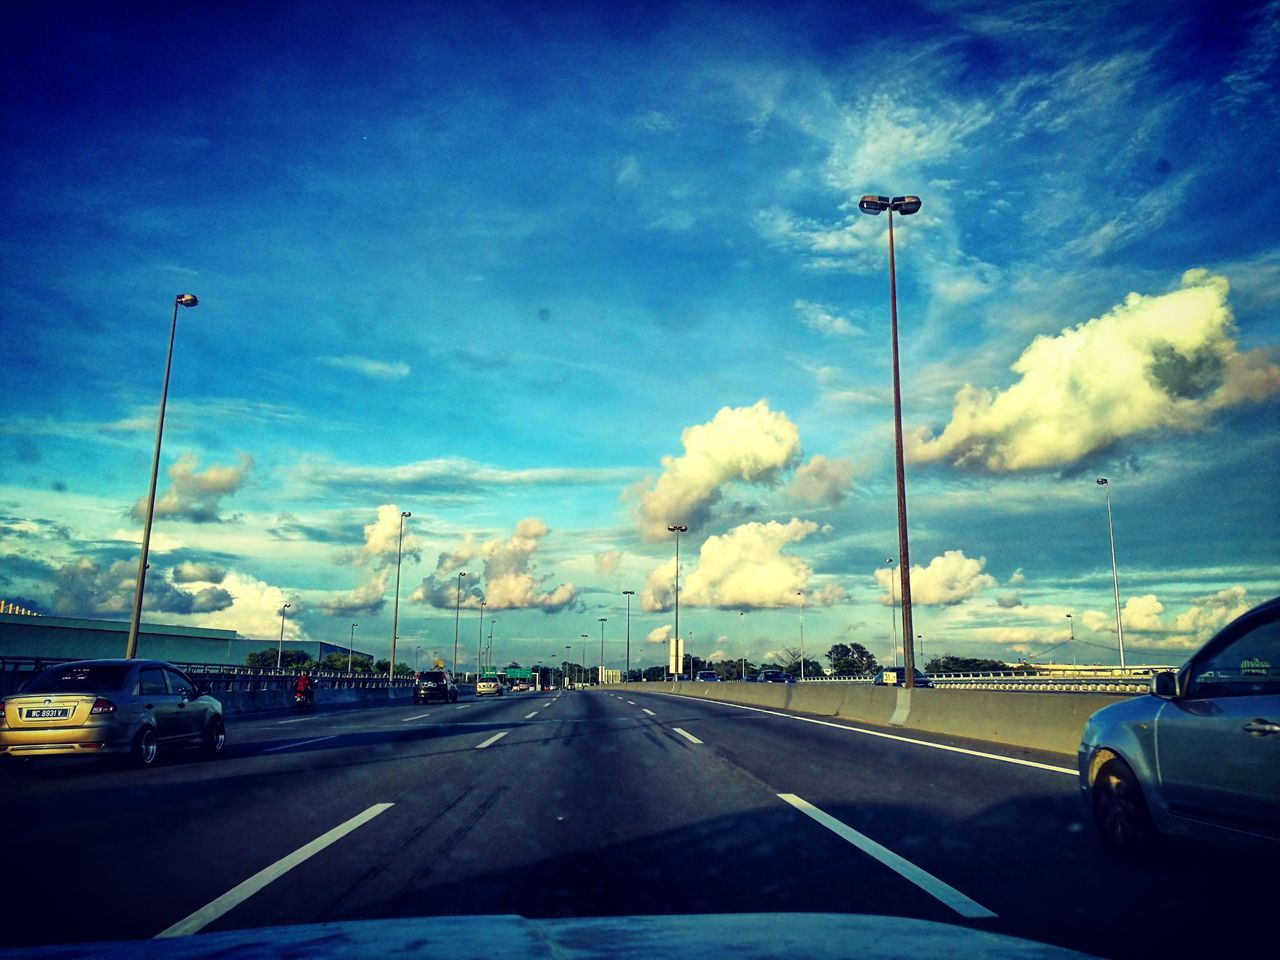 car, transportation, road, cloud - sky, sky, land vehicle, mode of transport, windshield, day, the way forward, car interior, car point of view, no people, blue, outdoors, nature